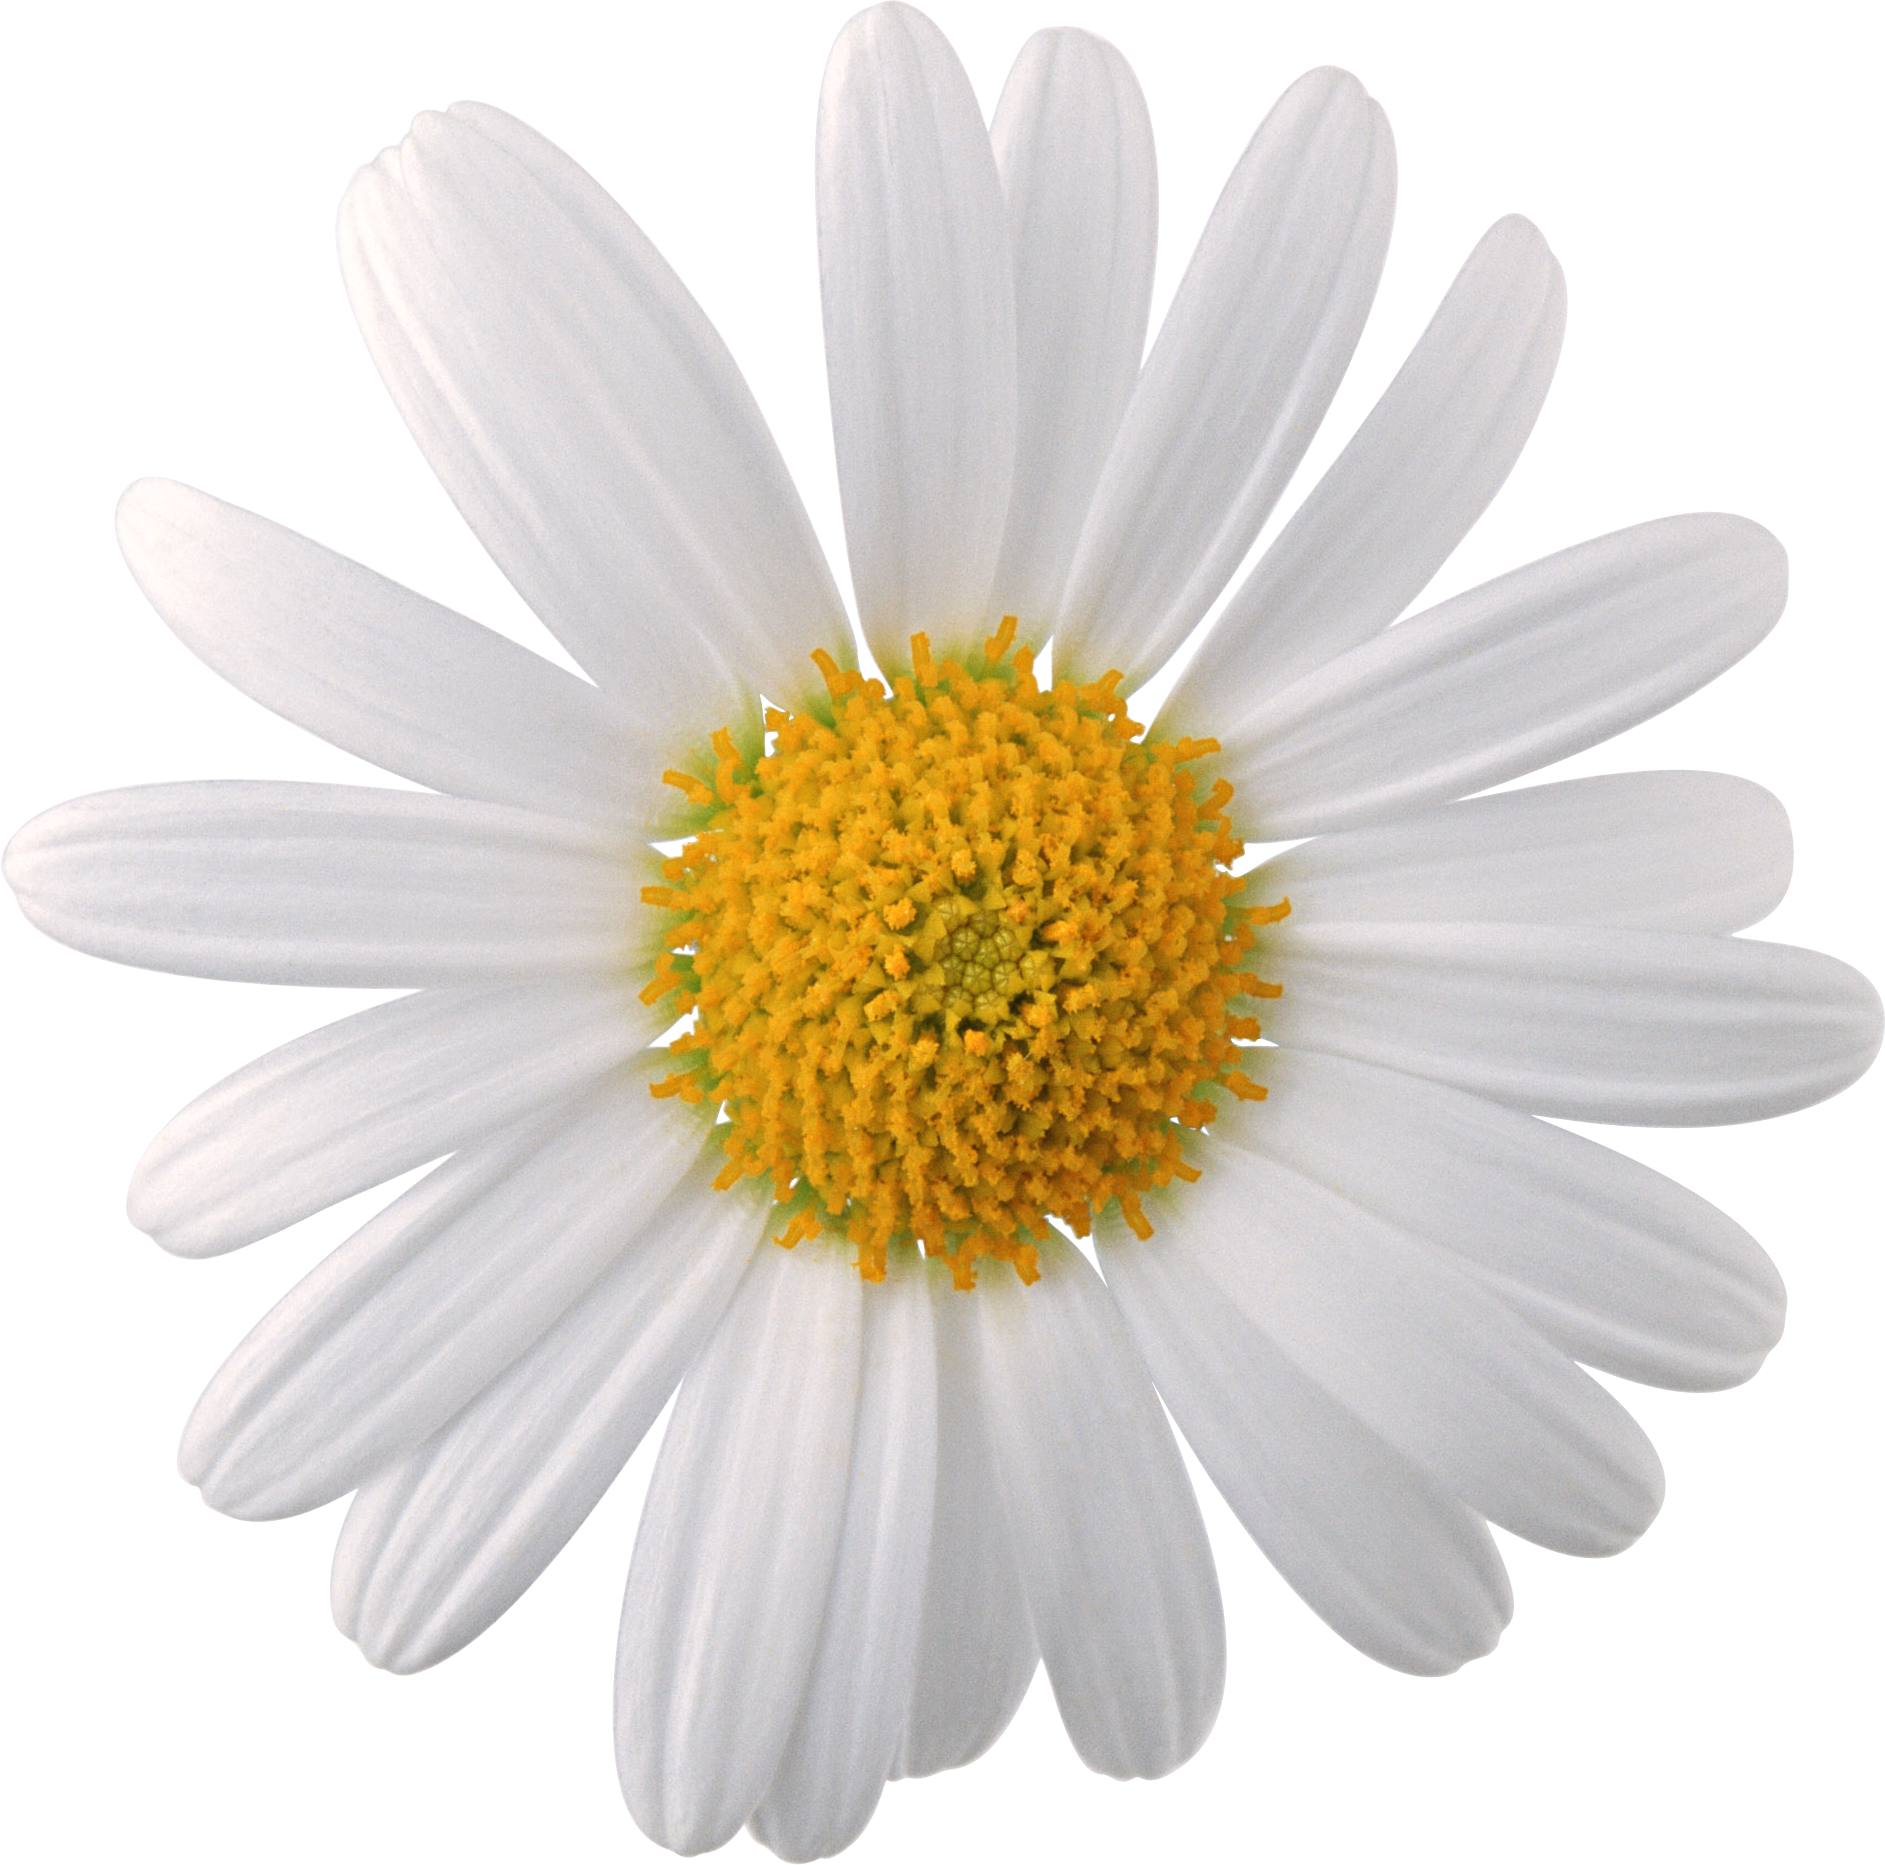 Camomile Png Image Free Picture Flower Download Buy Flowers Online Daisy Flower Order Flowers